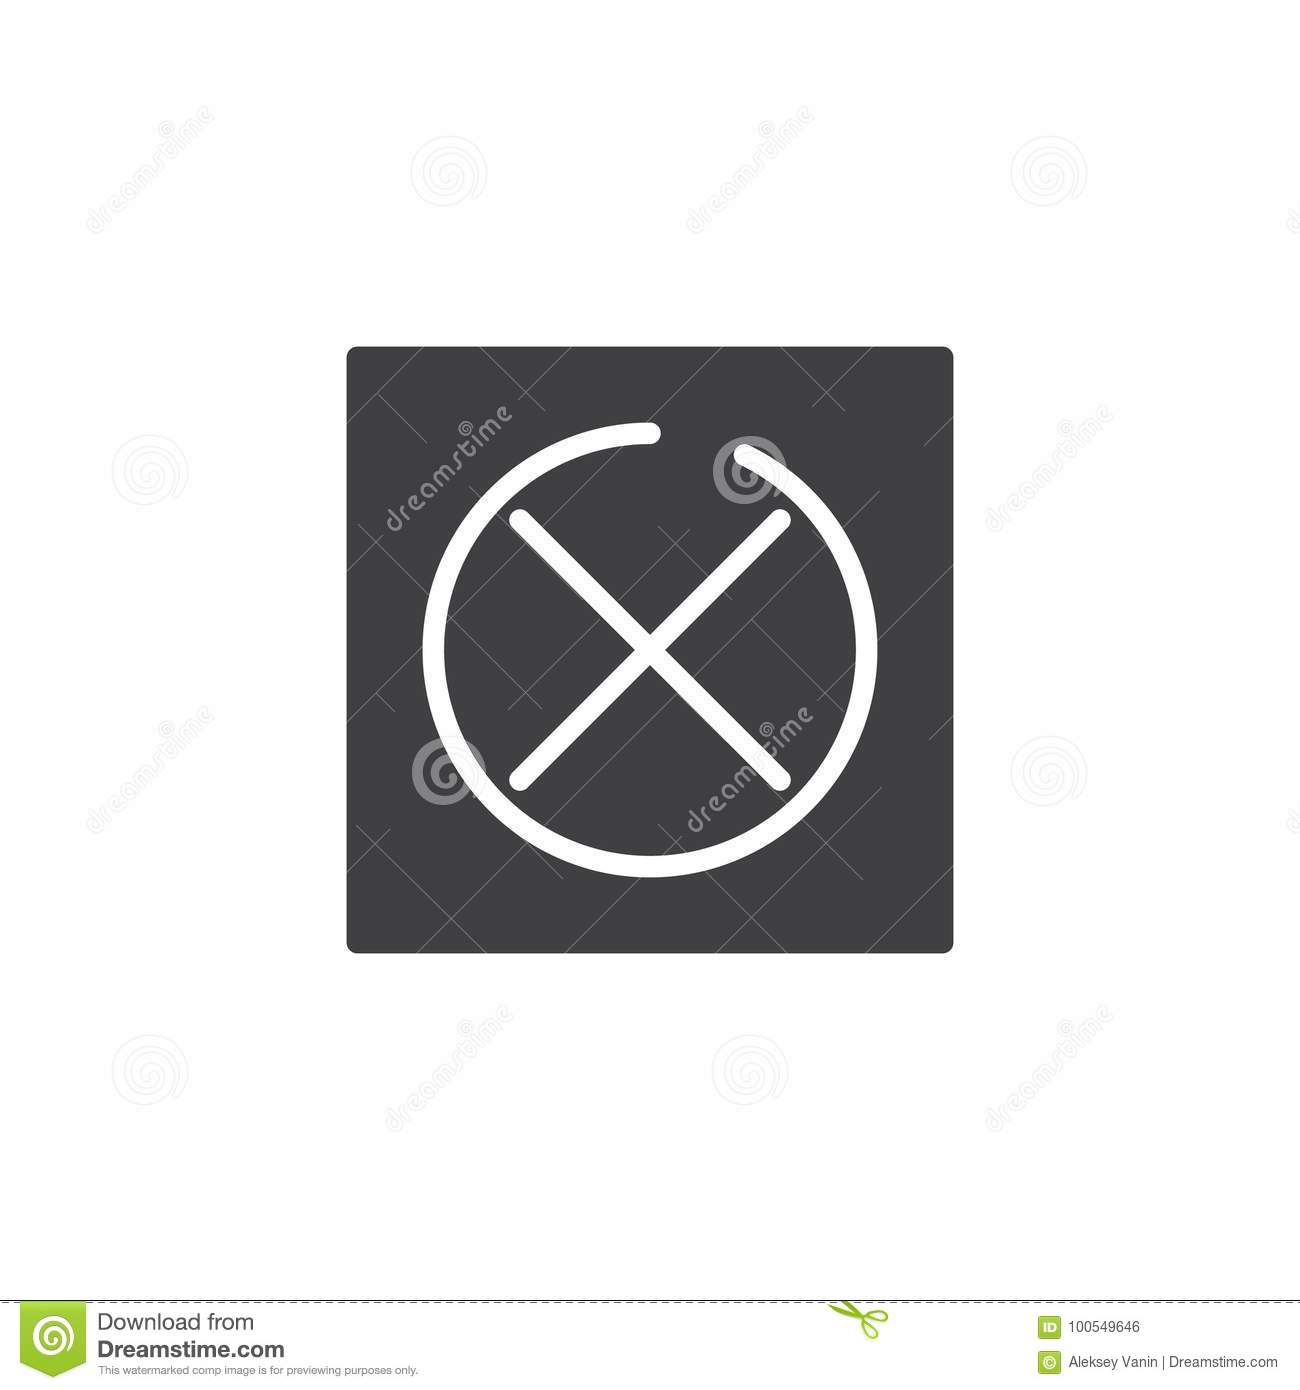 Do Not Tumble Dry Icon Vector Stock Vector Illustration Of Symbol